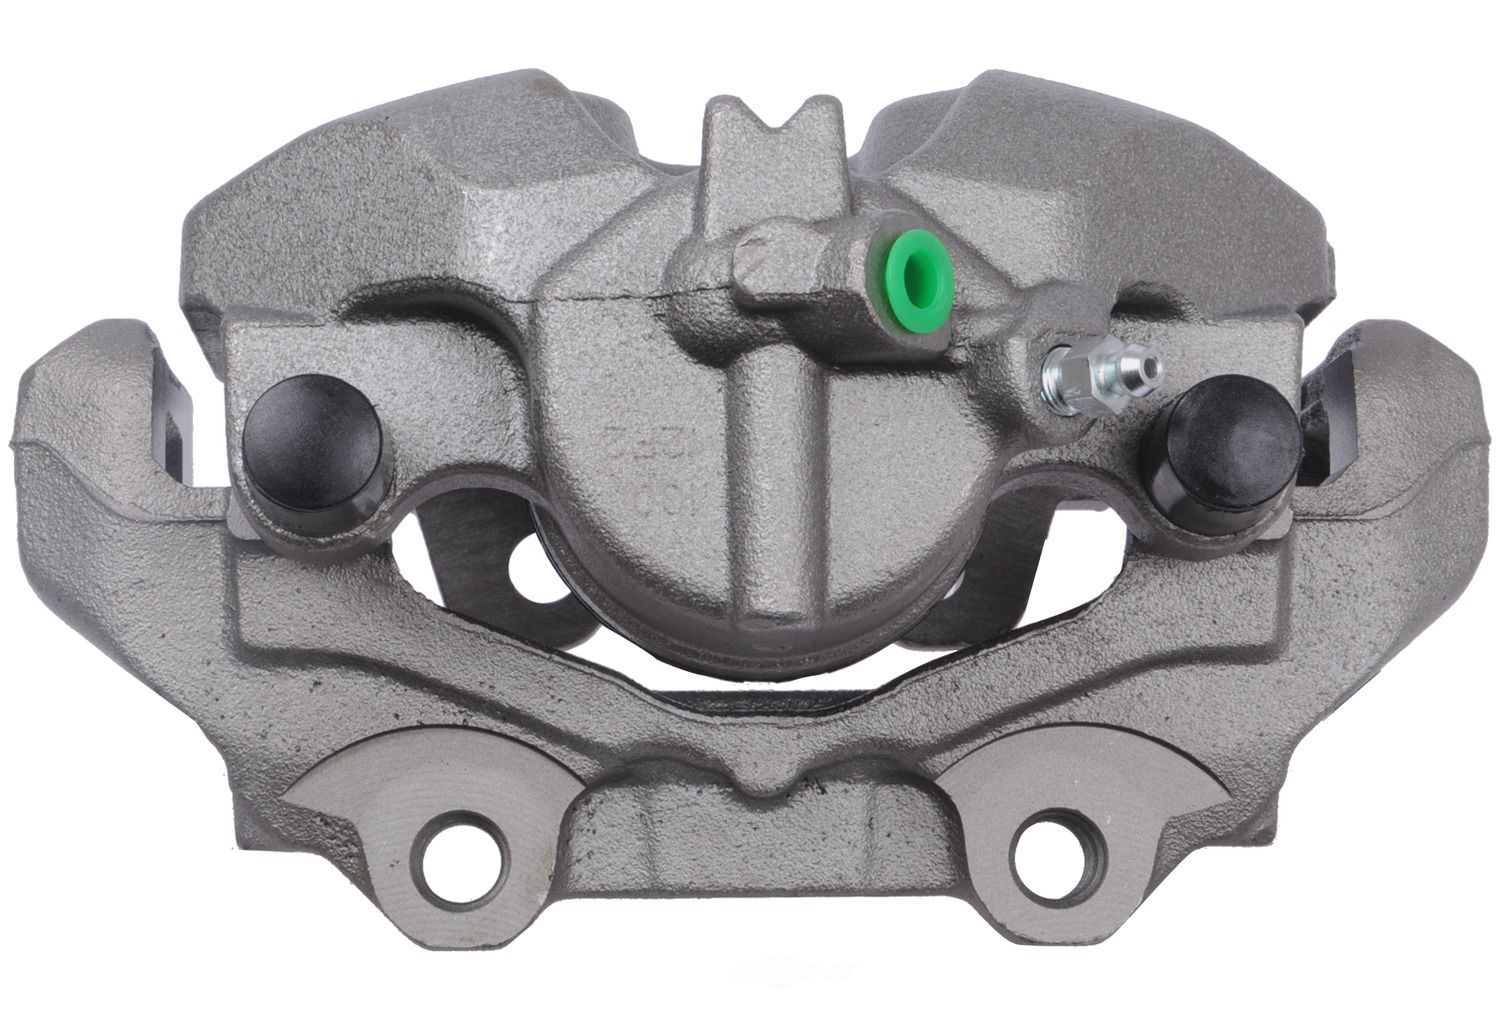 CARDONE/A-1 CARDONE - Remanufactured Friction Choice Caliper w/Bracket (Front Right) - A1C 18-B5483